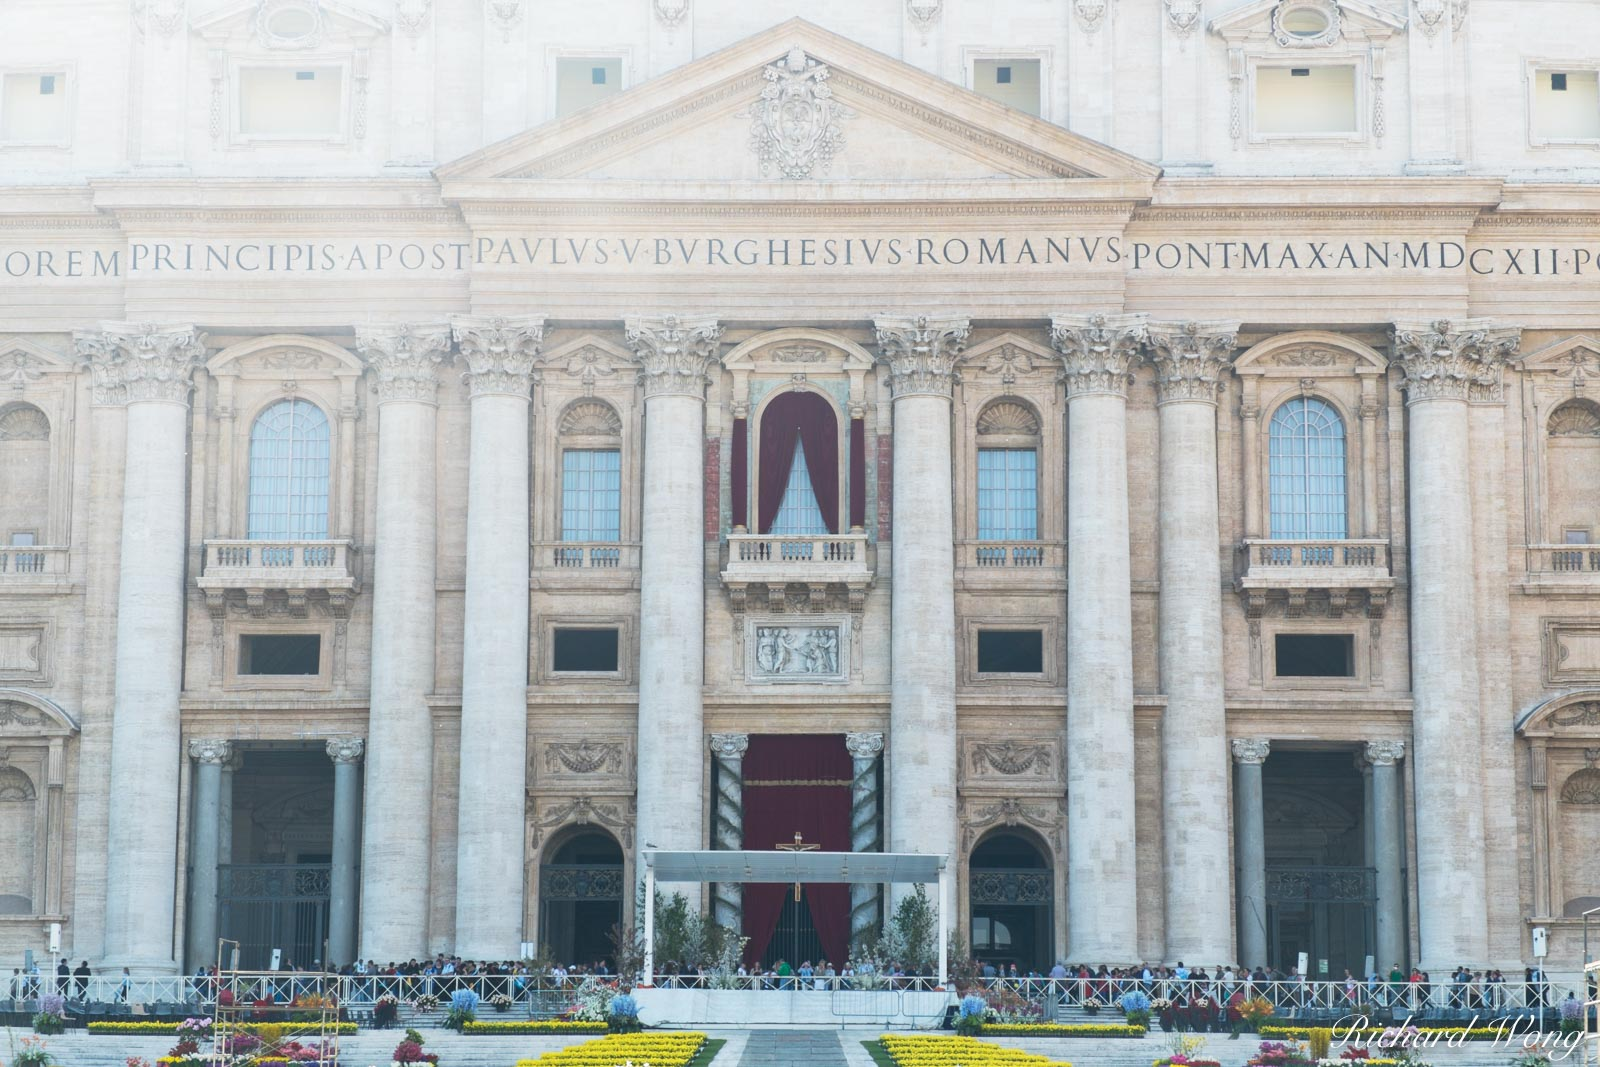 St. Peter's Basilica, Vatican City, photo, photo